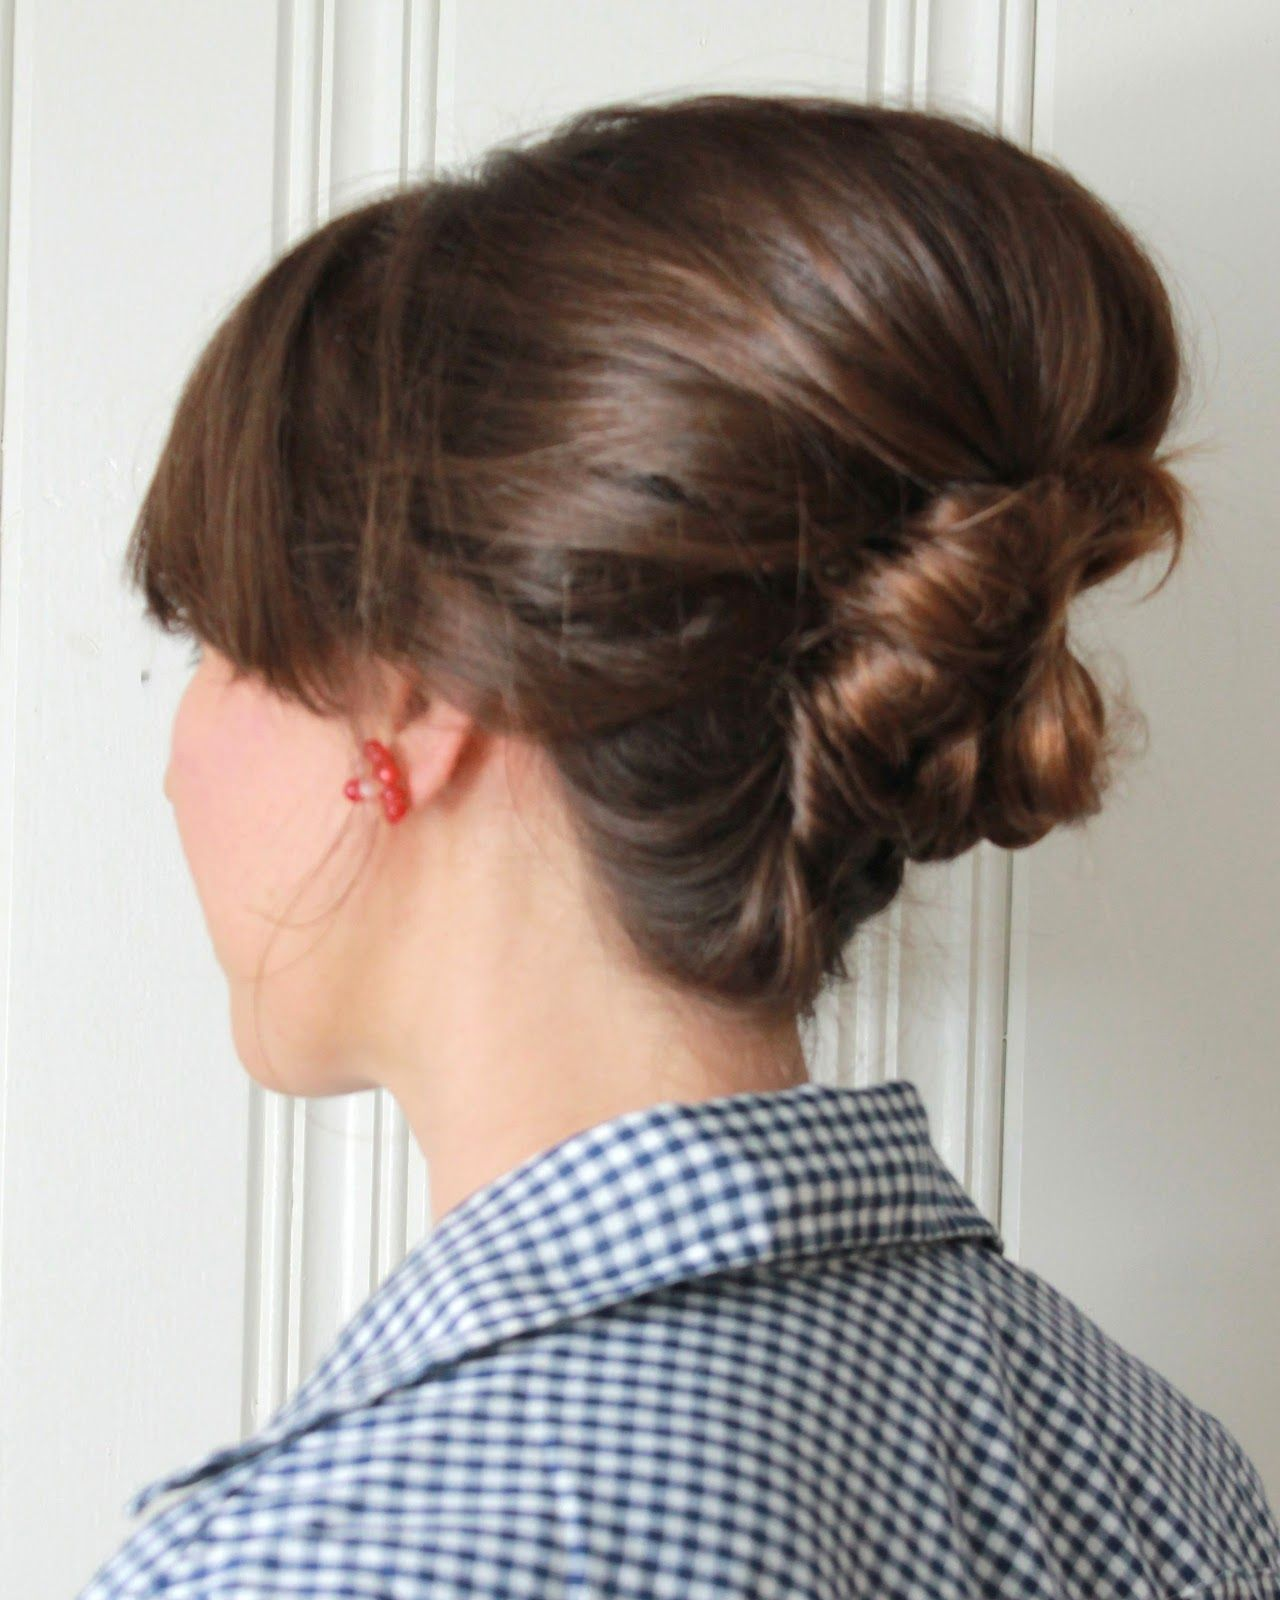 Beehive Hairstyles For Wedding: Nosilla Vintage: How To Do: The Messy Beehive #beehive